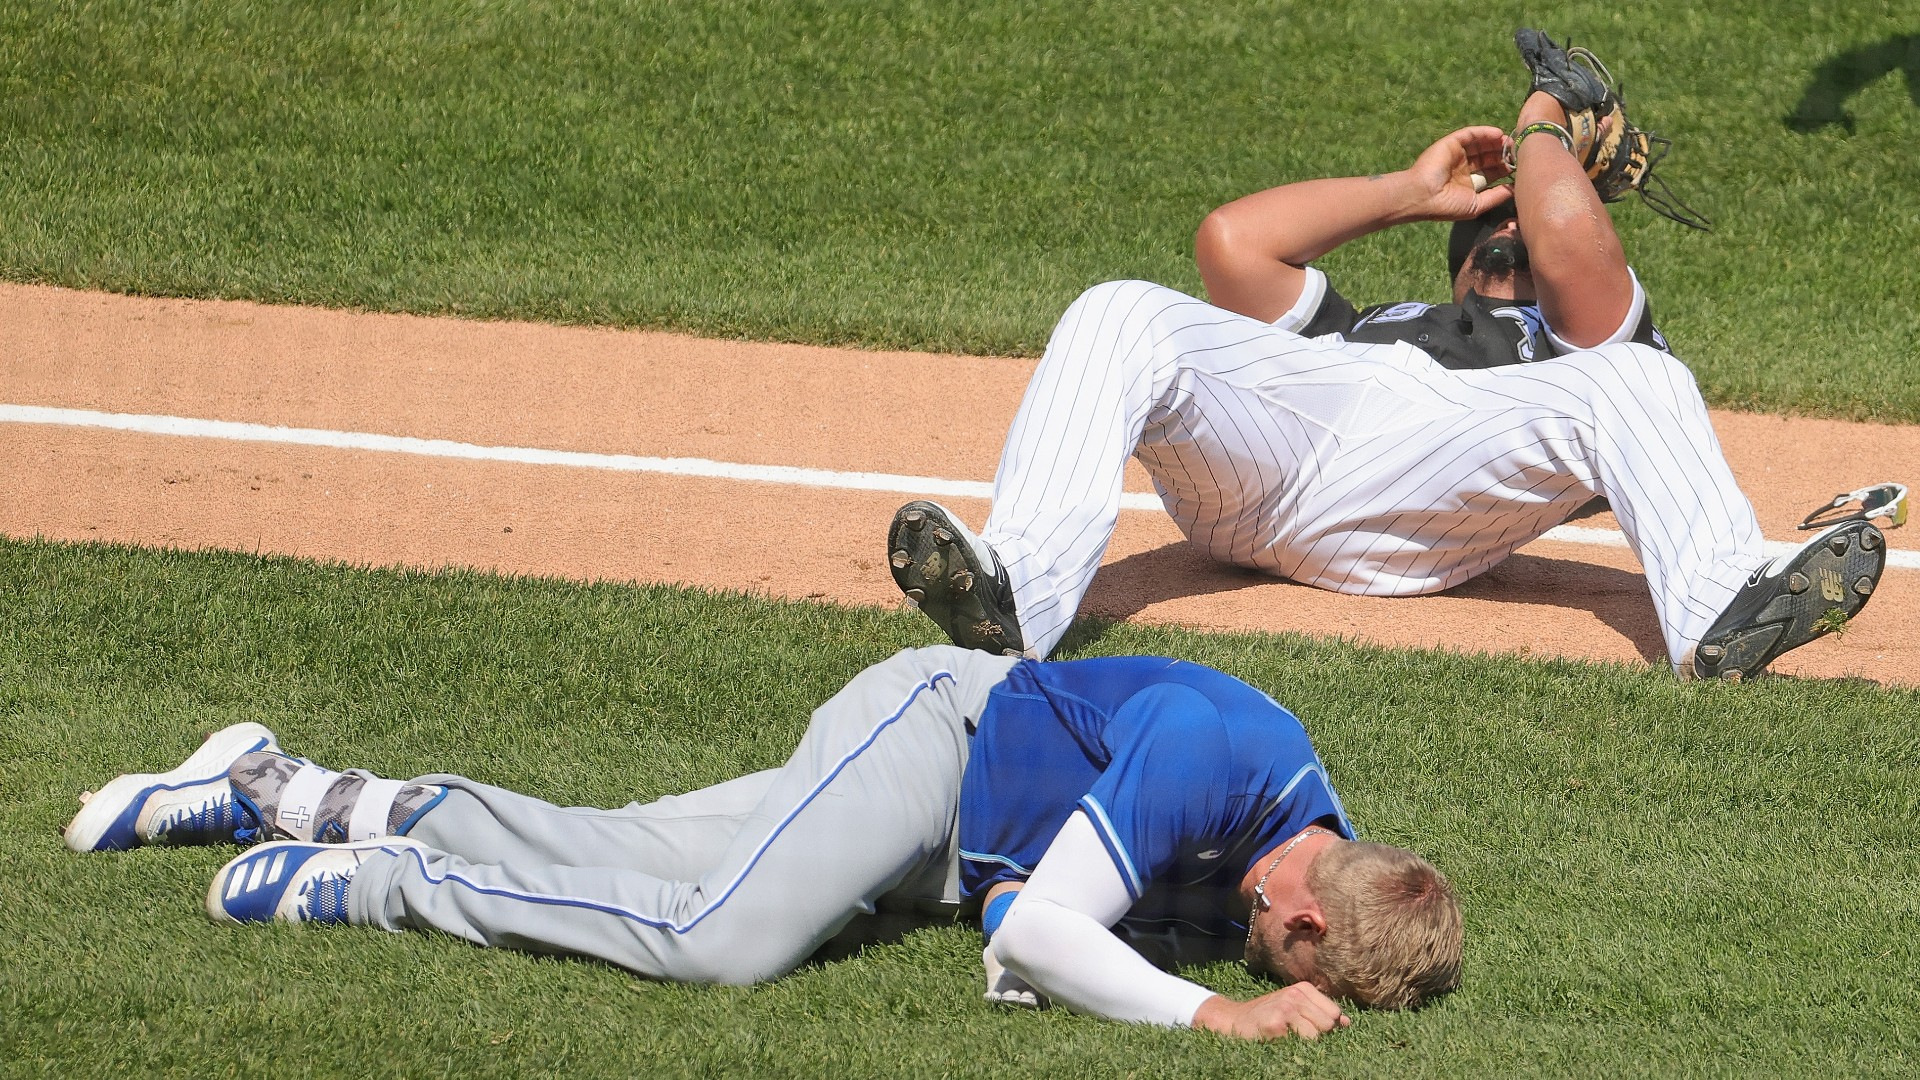 Jose Sreu of the White Sox, Hunter Dozier of the Royals had a terrifying collision